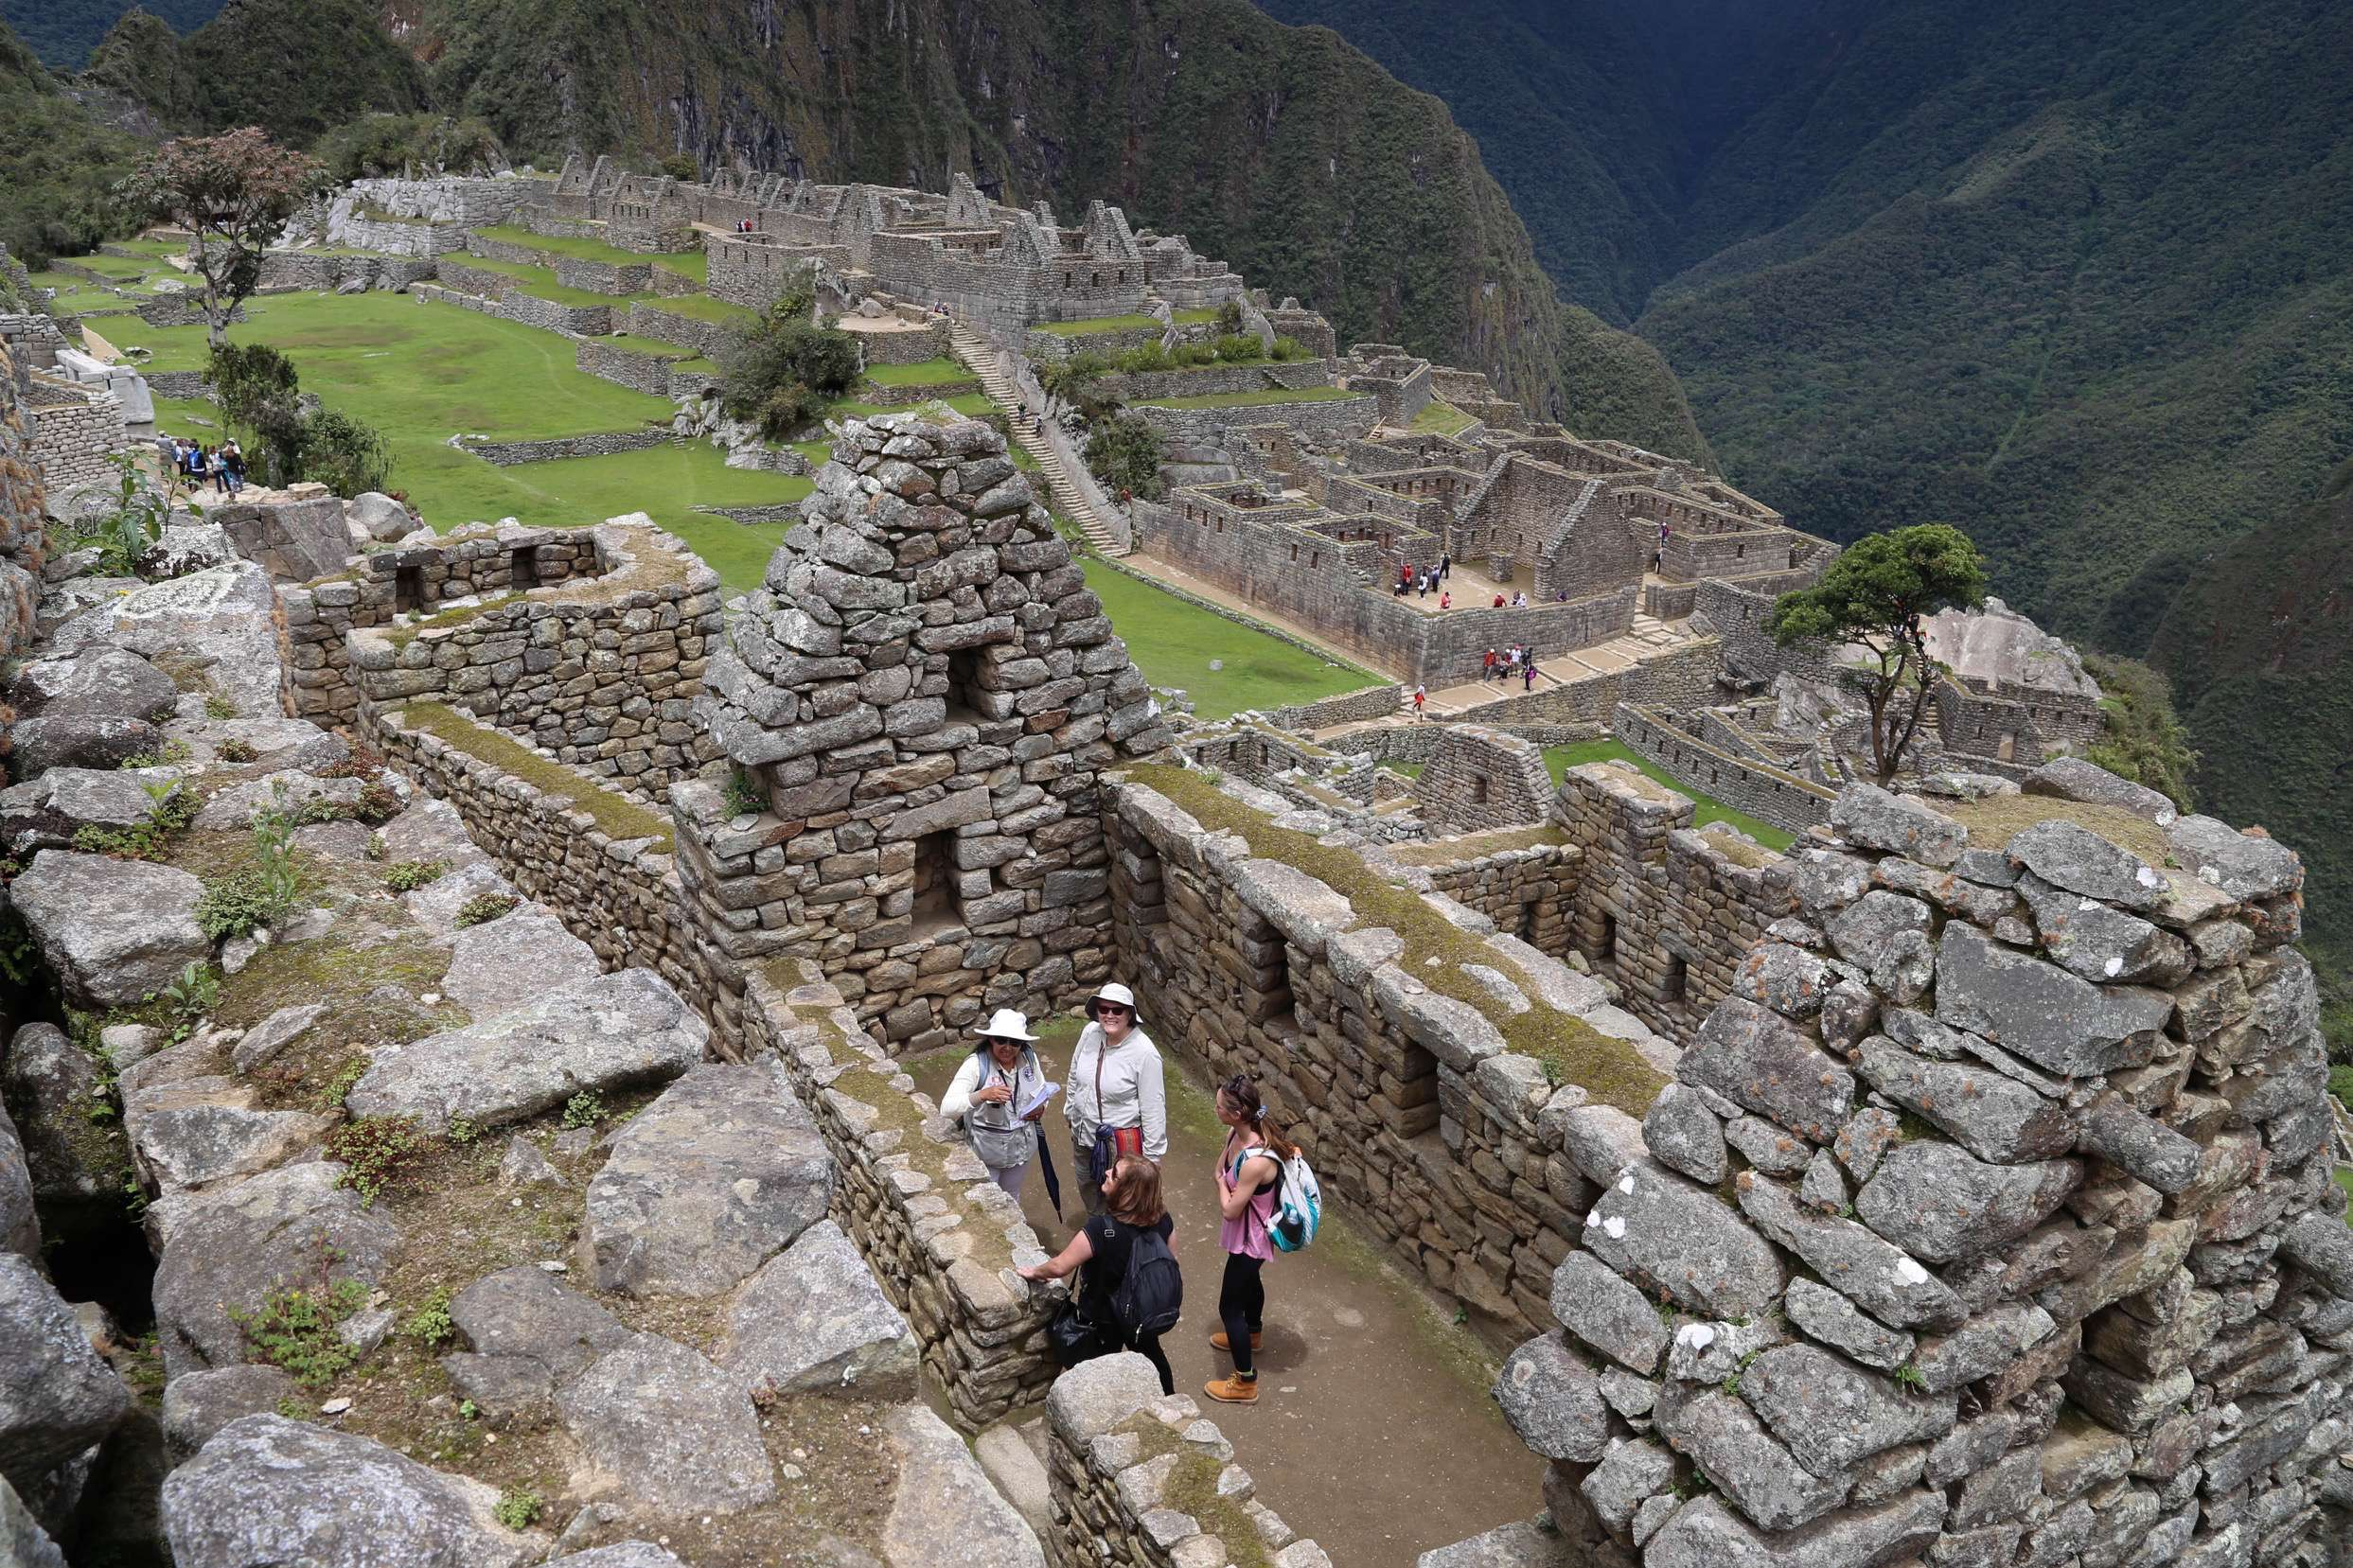 Researchers believe it took thousands of workers to construct Machu Picchu, but less than 1,000 people lived there.